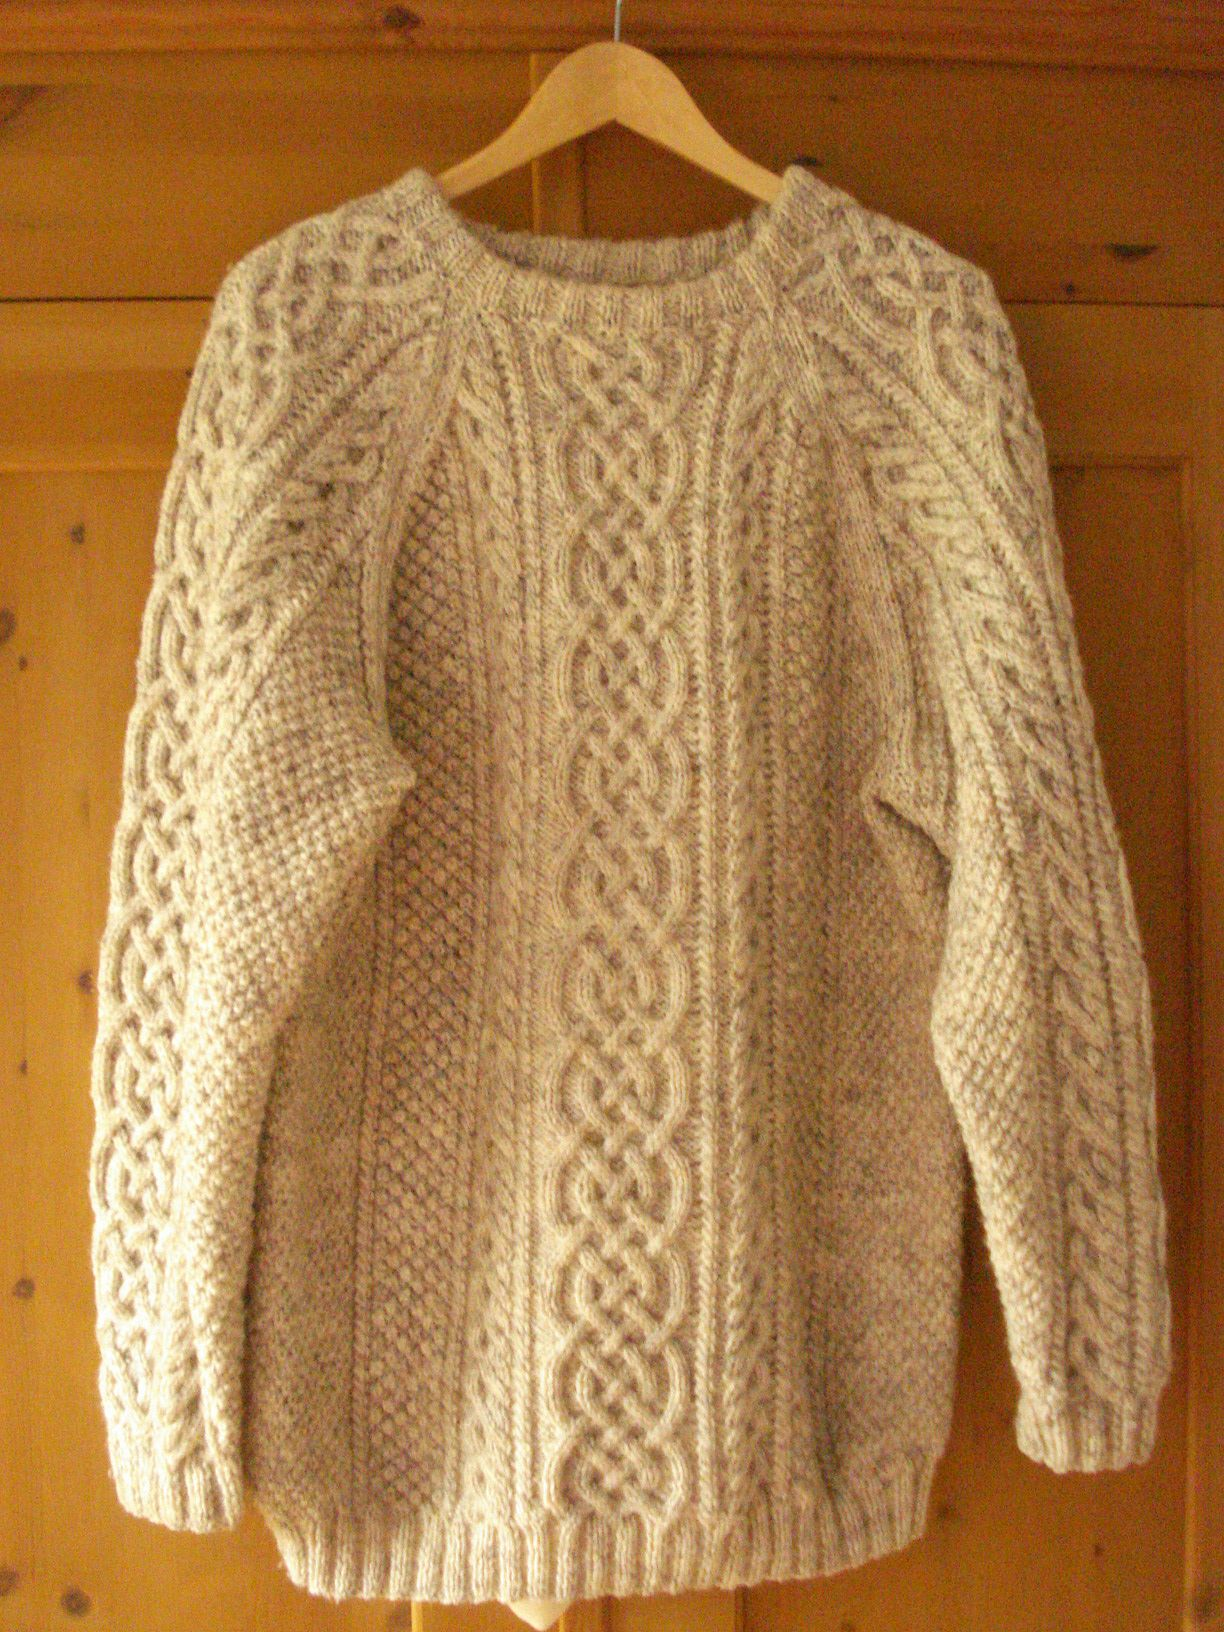 Aran Knitting : handmade aran sweater knitting cables 2013 Pinterest